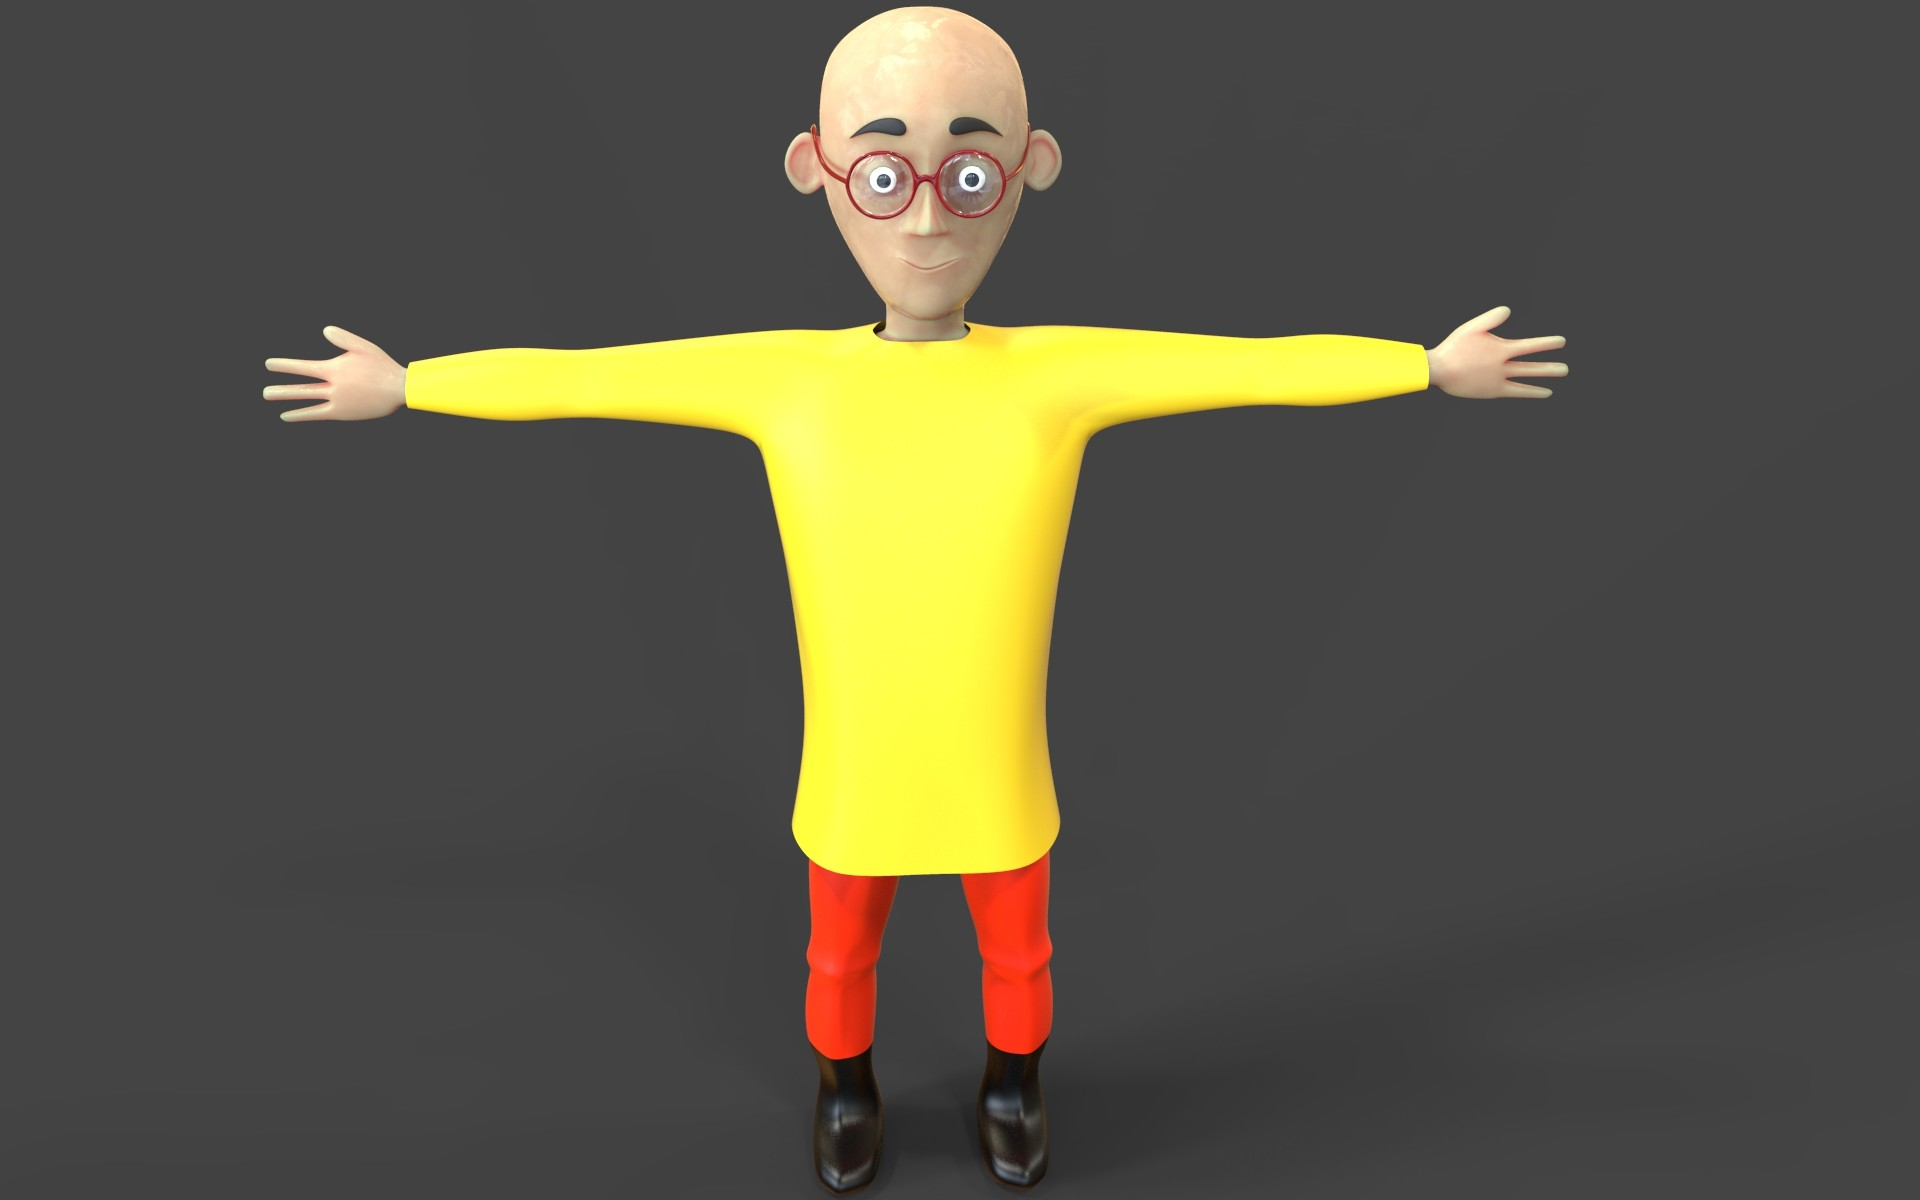 mandar kulthe patlu from motu patlu cartoon